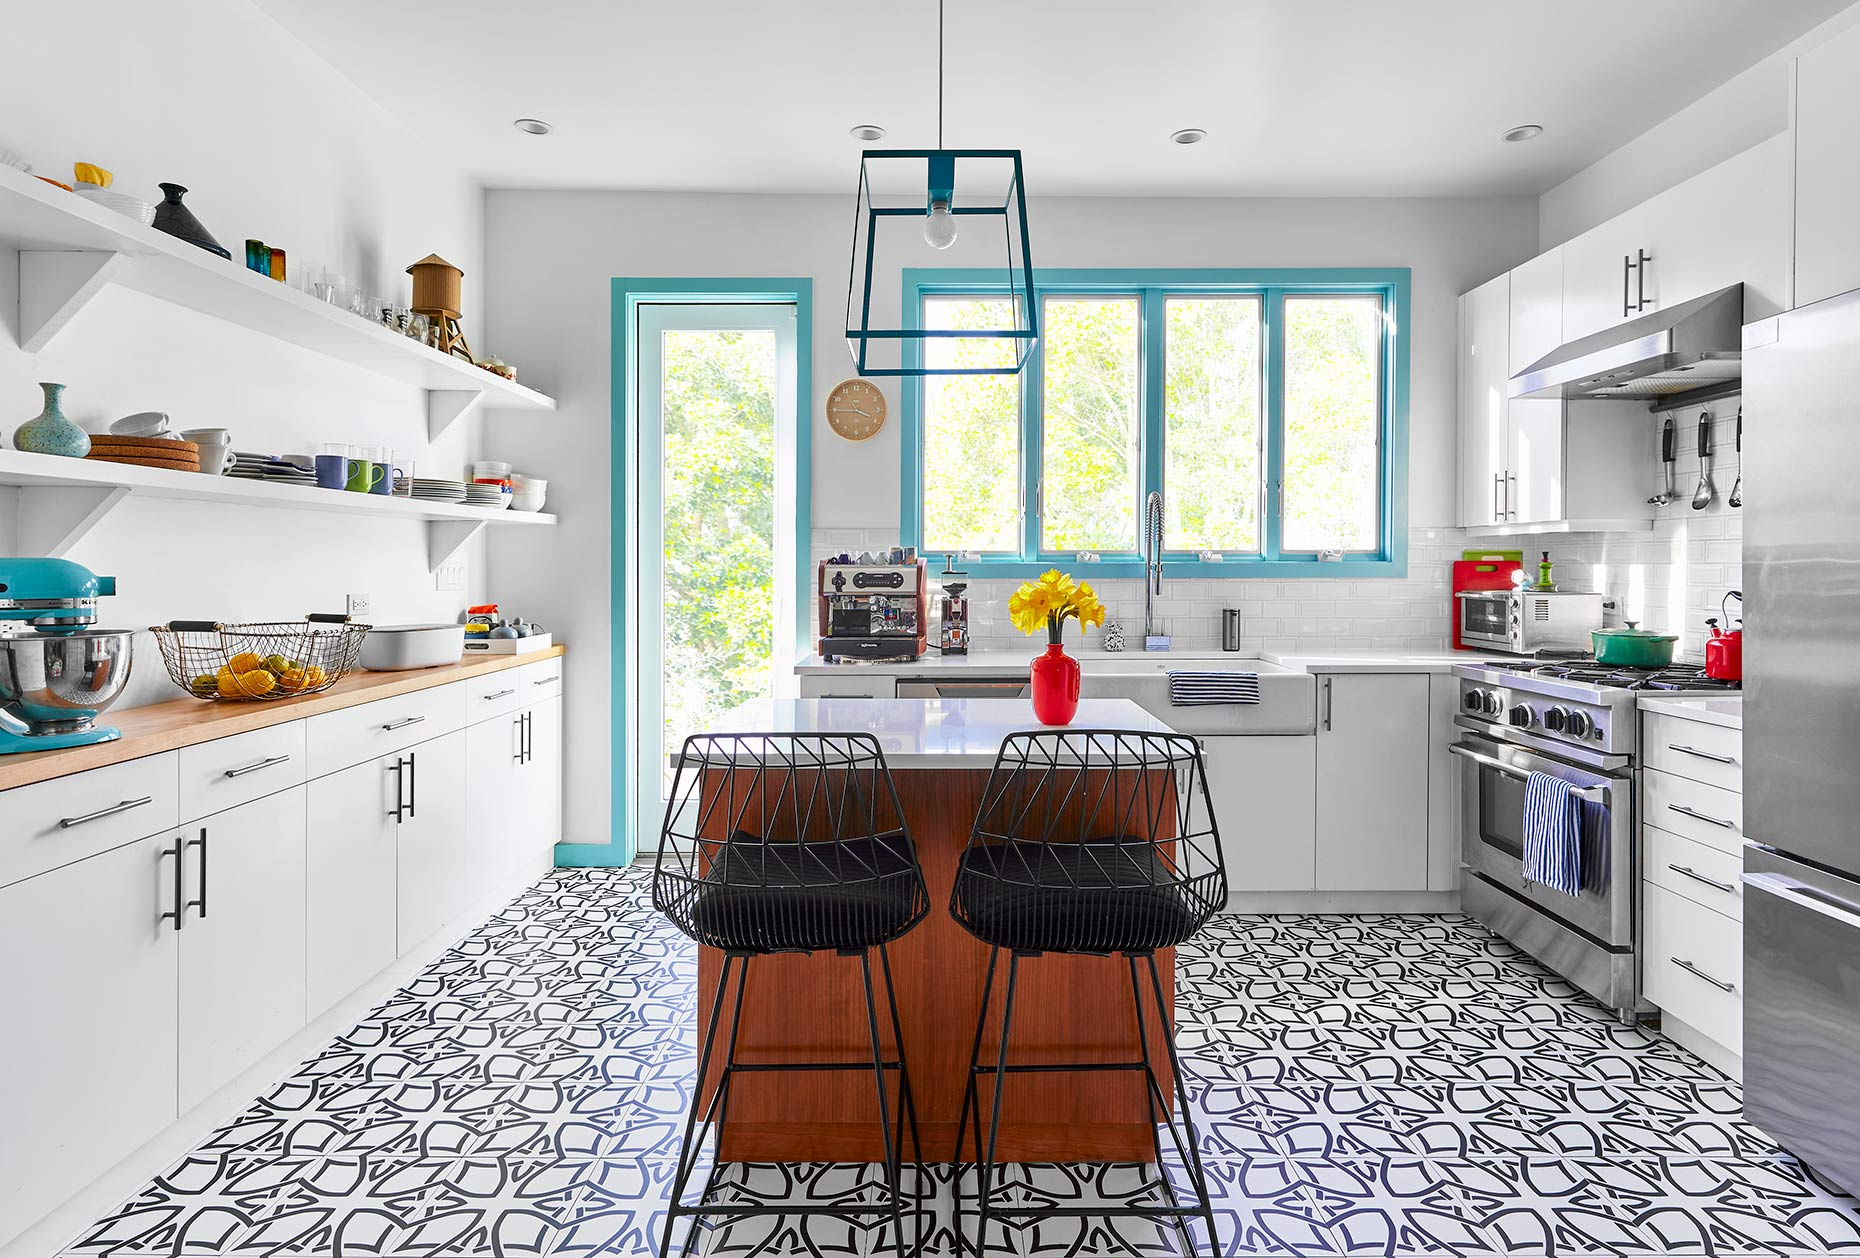 Jeremy-Frechette-Brooklyn-kitchen copy.jpg